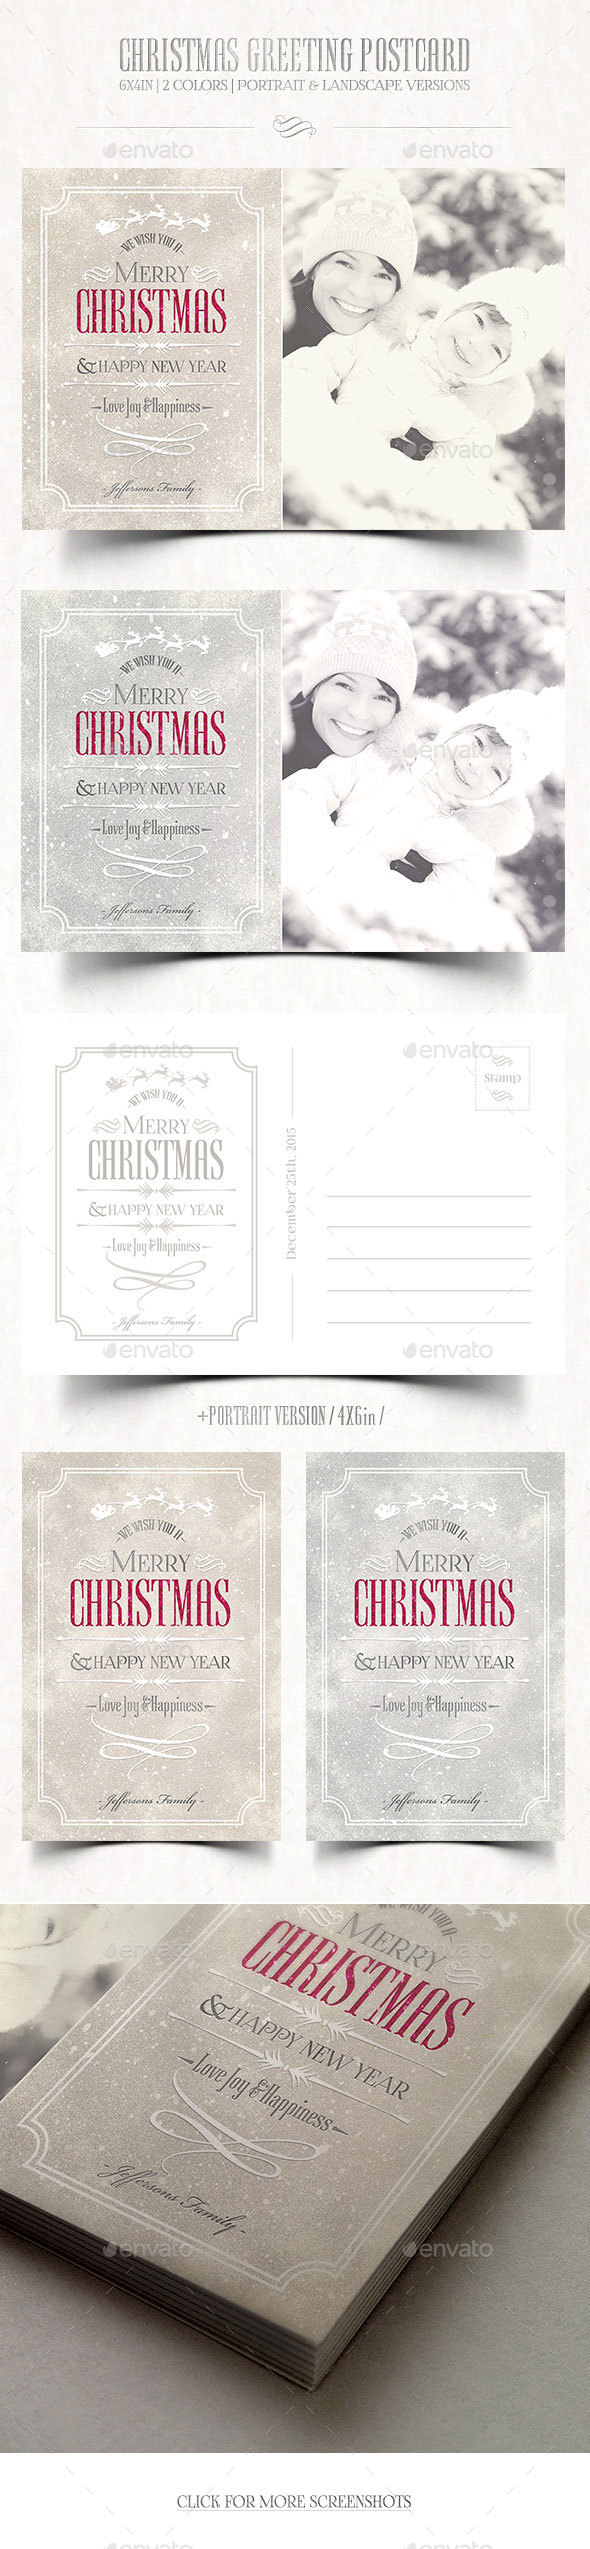 Christmas Greeting Postcard - Holiday Greeting Cards